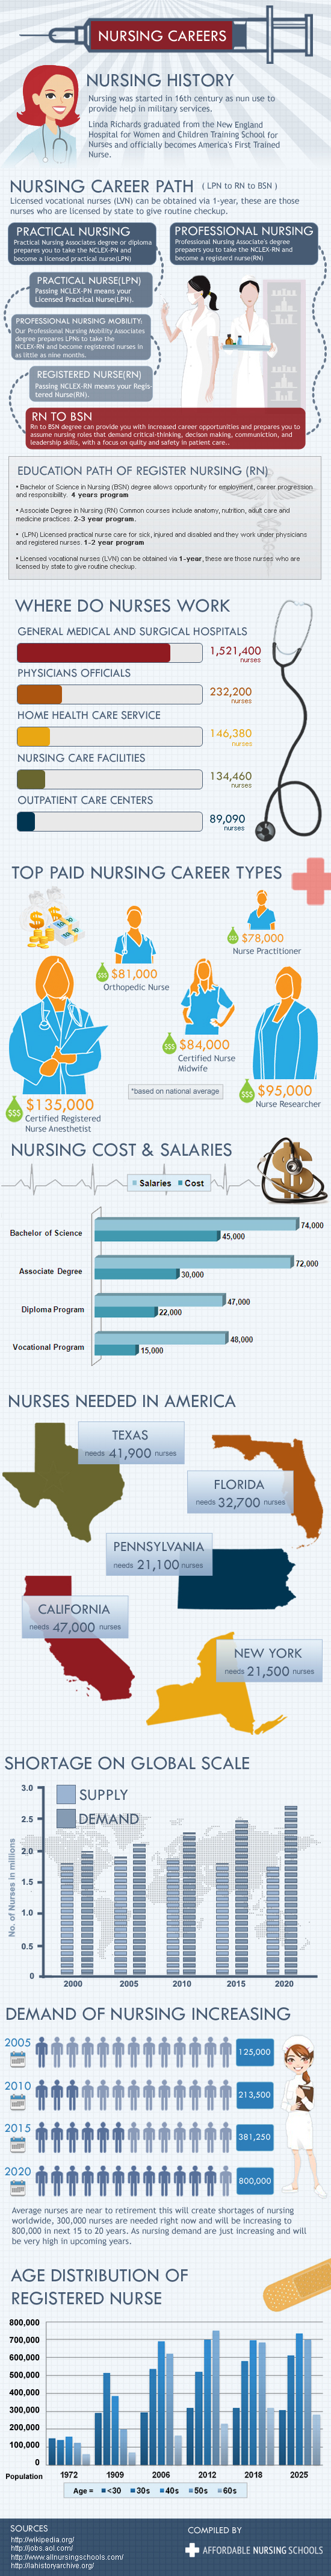 What You Need To Know About The Nursing Career